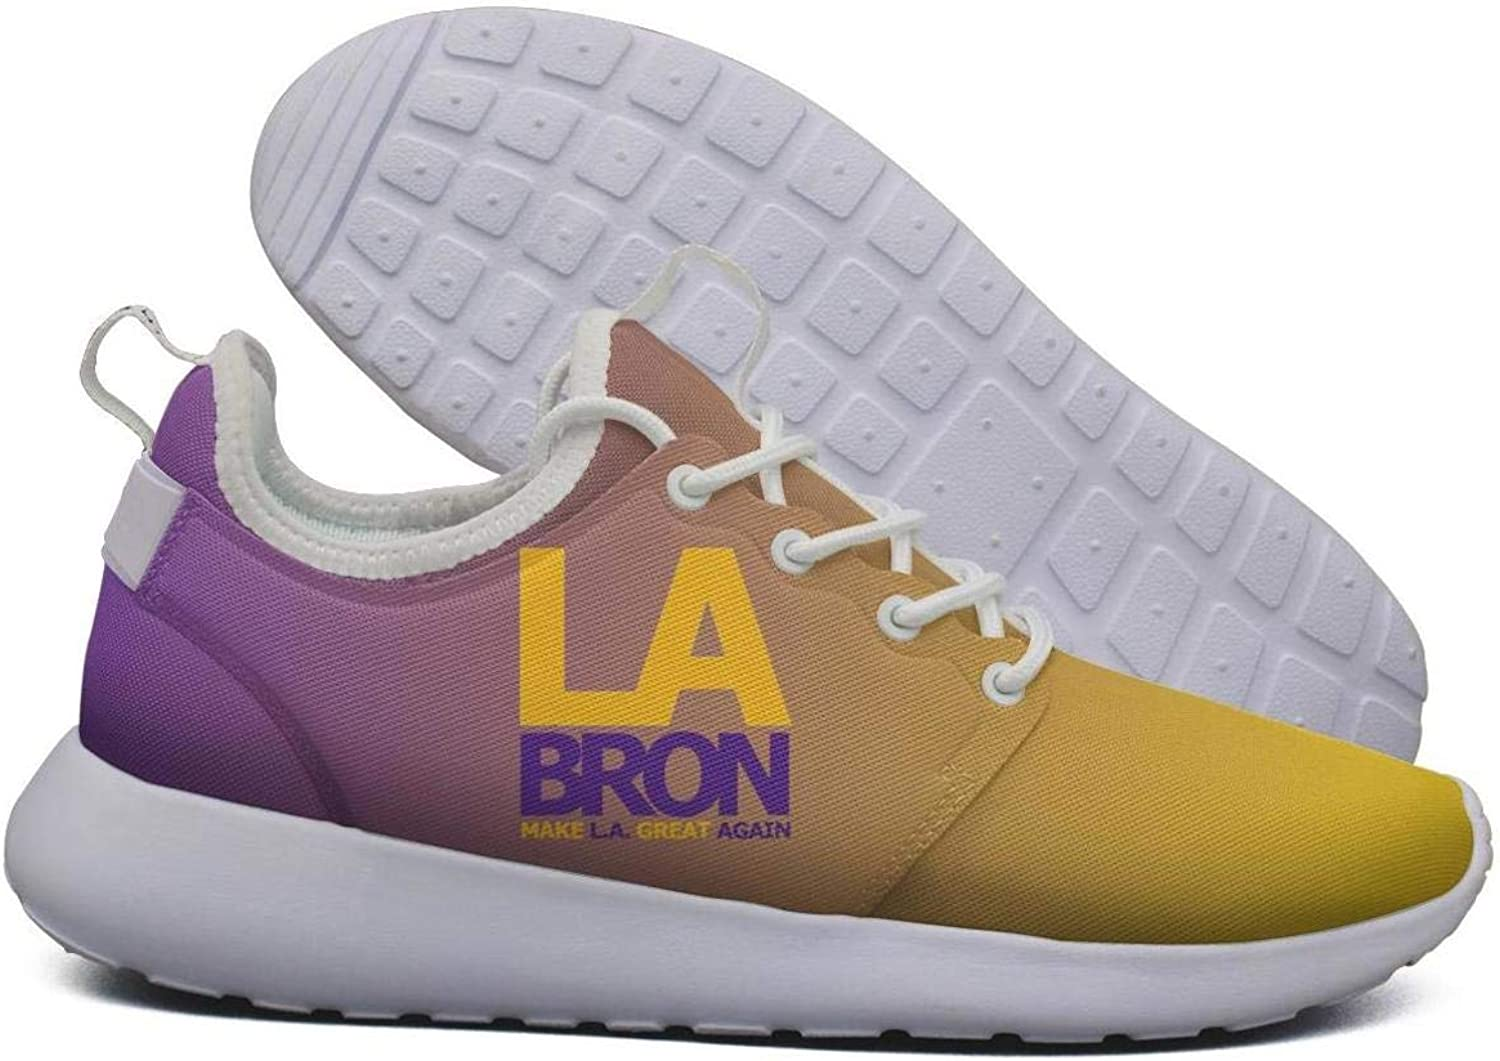 Womens Roshe Two Lightweight La-bron_Make_LA_Great_Again Soft Running Sneakers mesh shoes